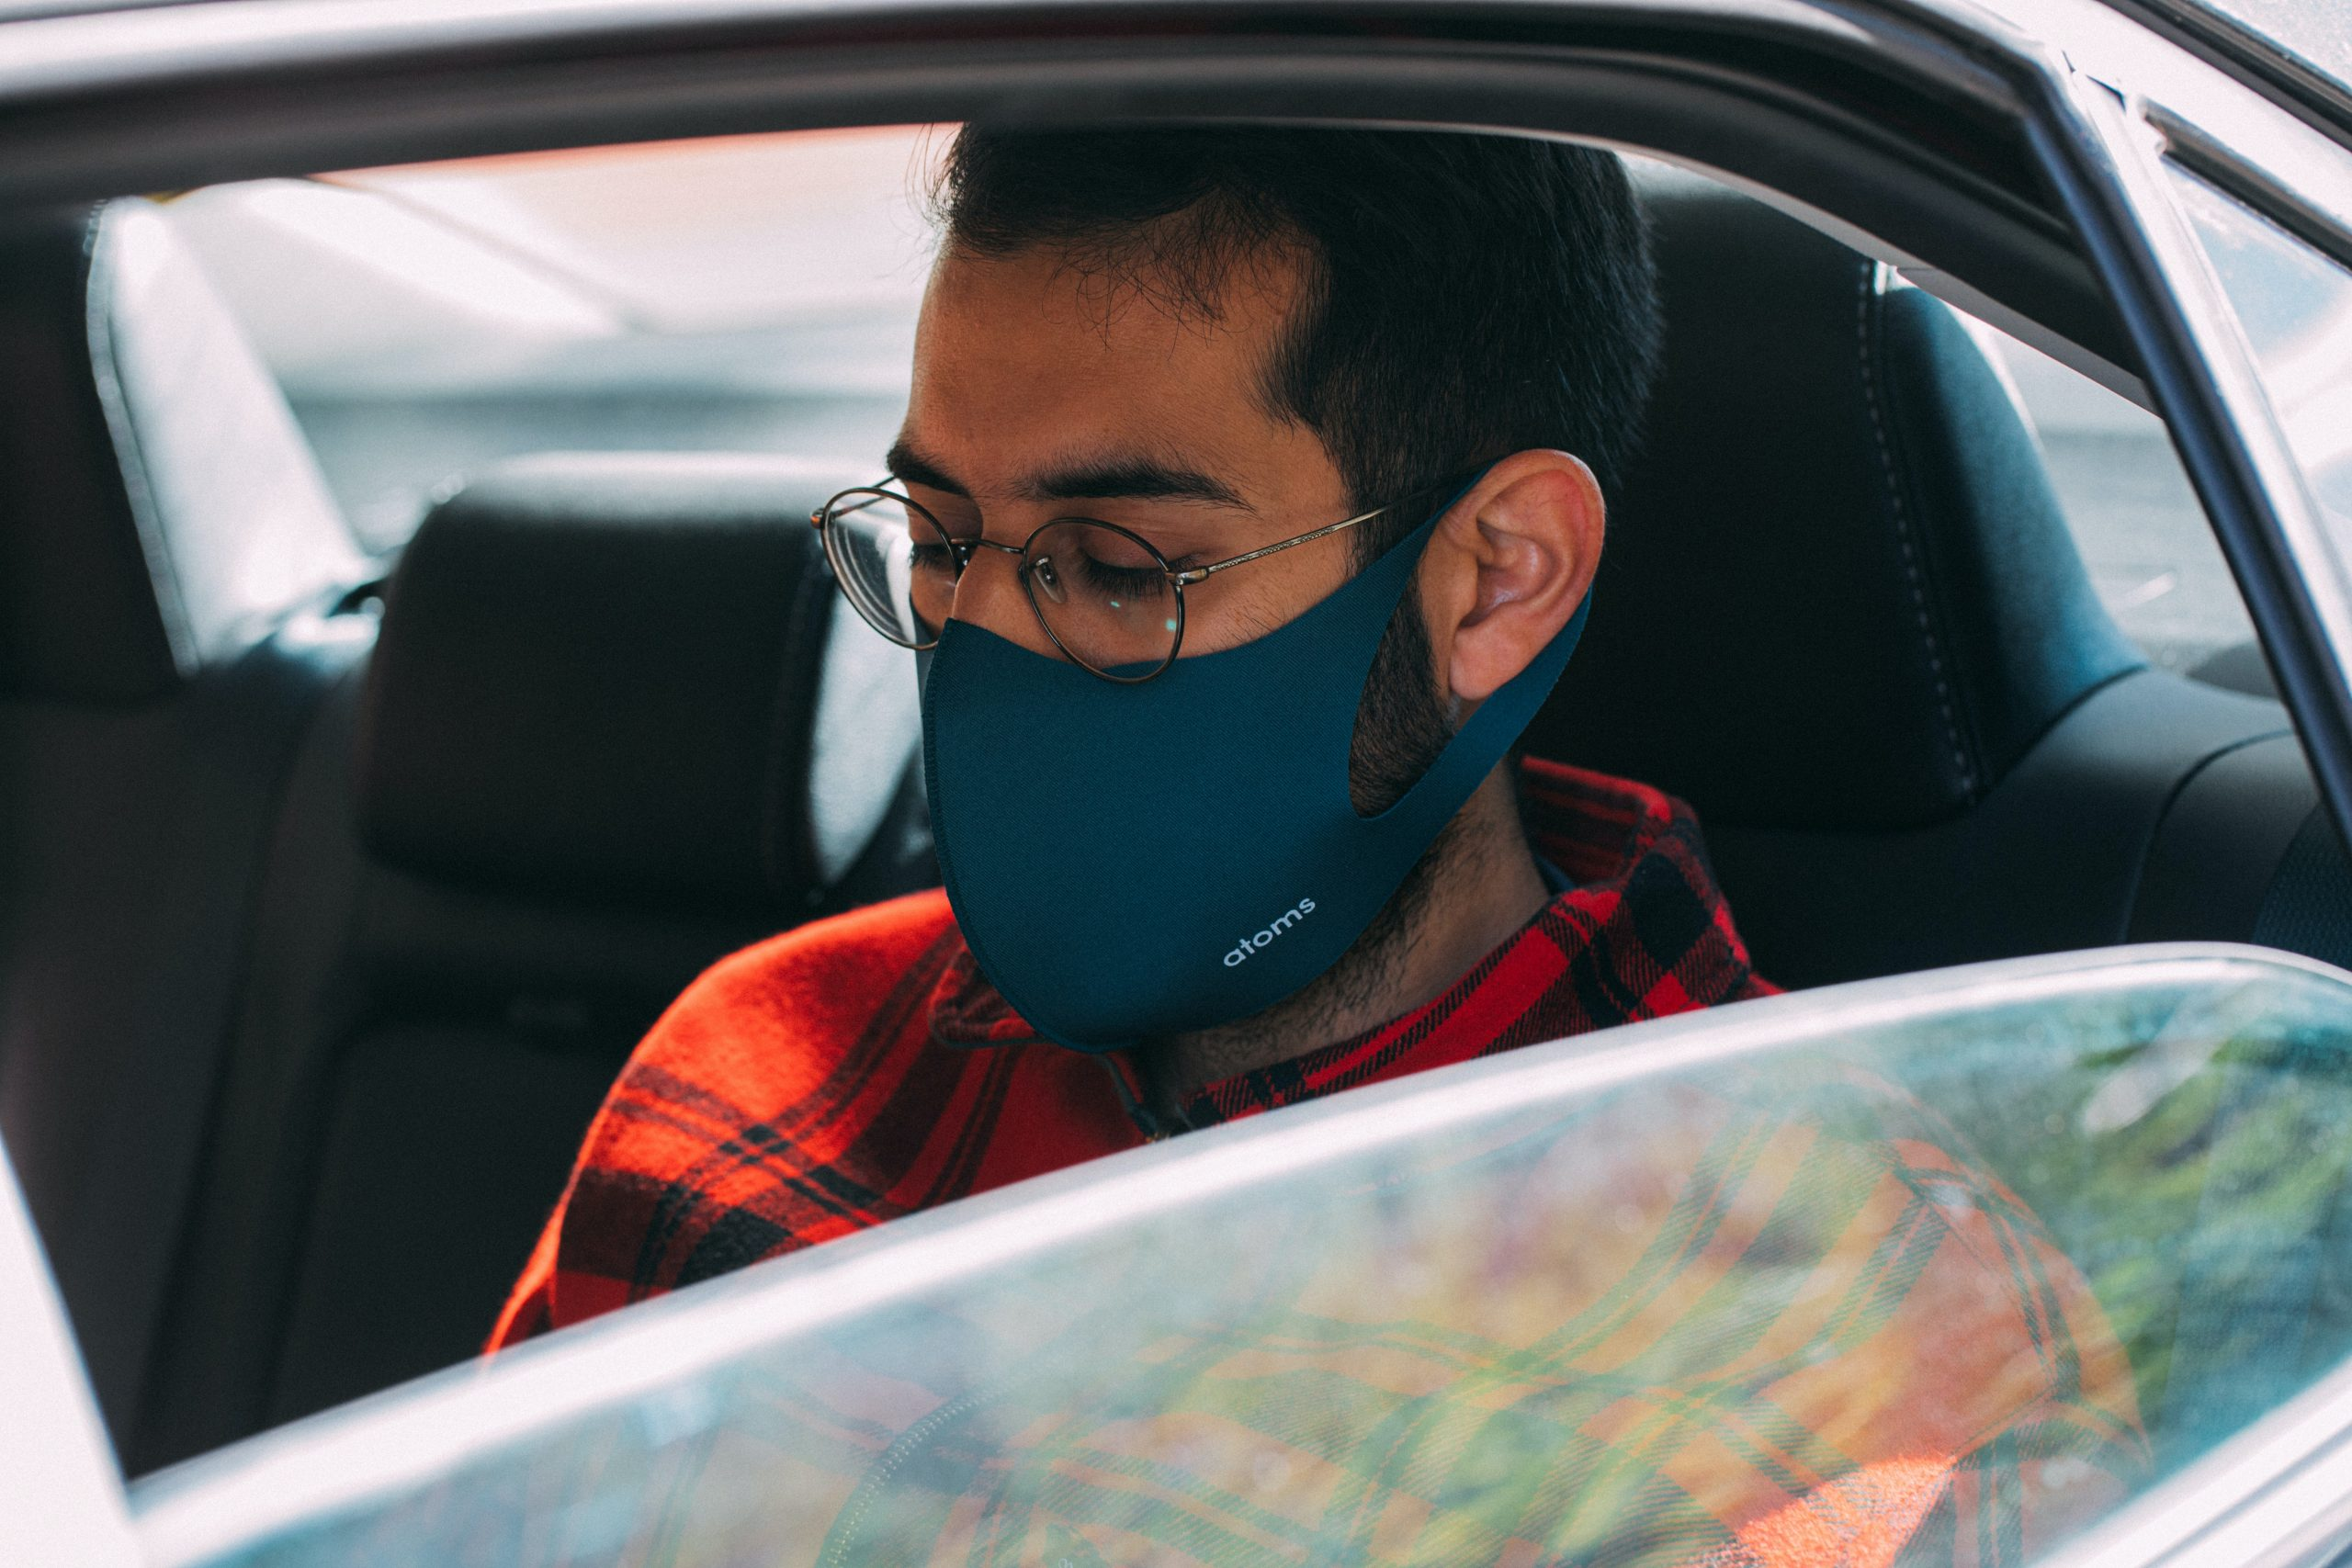 An Uber passenger sits in the backseat of a taxi. The shot looks through an open window and the passenger is wearing a face mask.